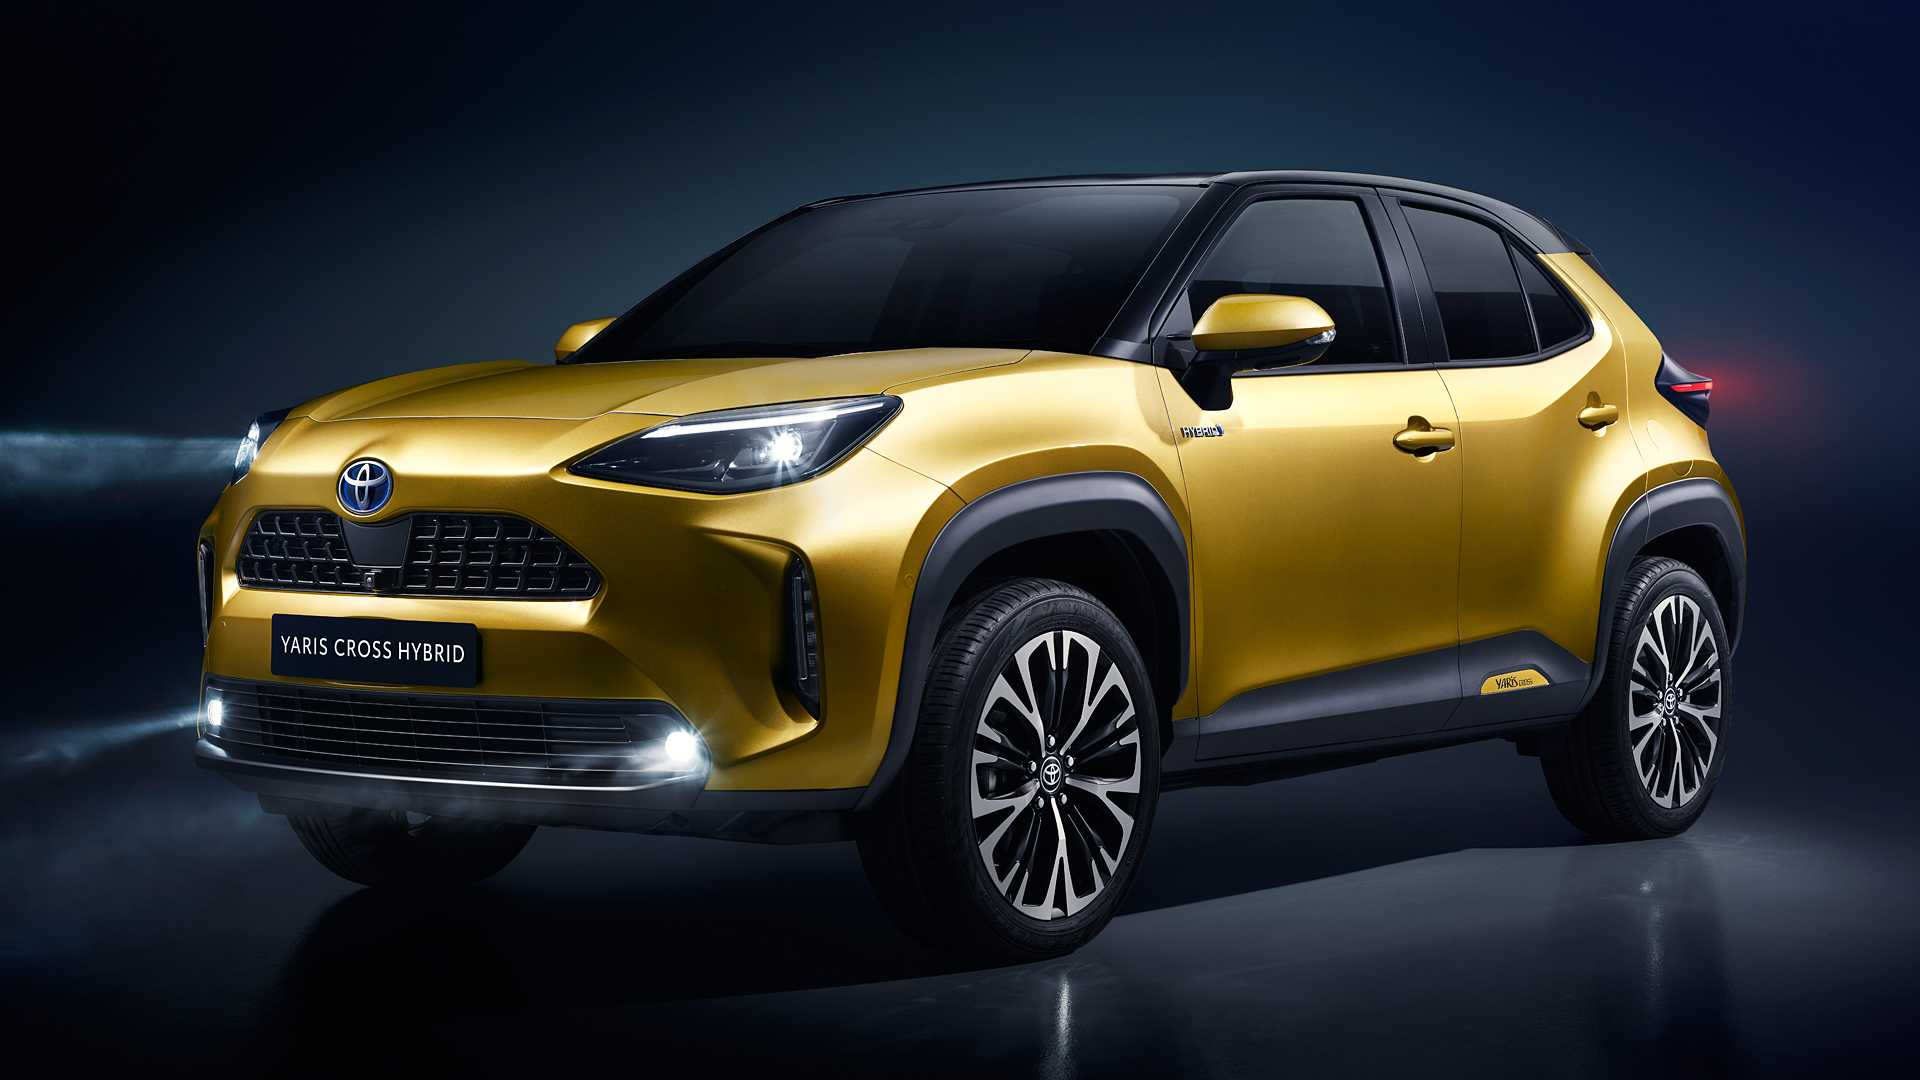 According to reports of Japanese mass media, premium carmaker Lexus is busy developing a small crossover SUV based on the later Toyota Yaris Cross (shown here).